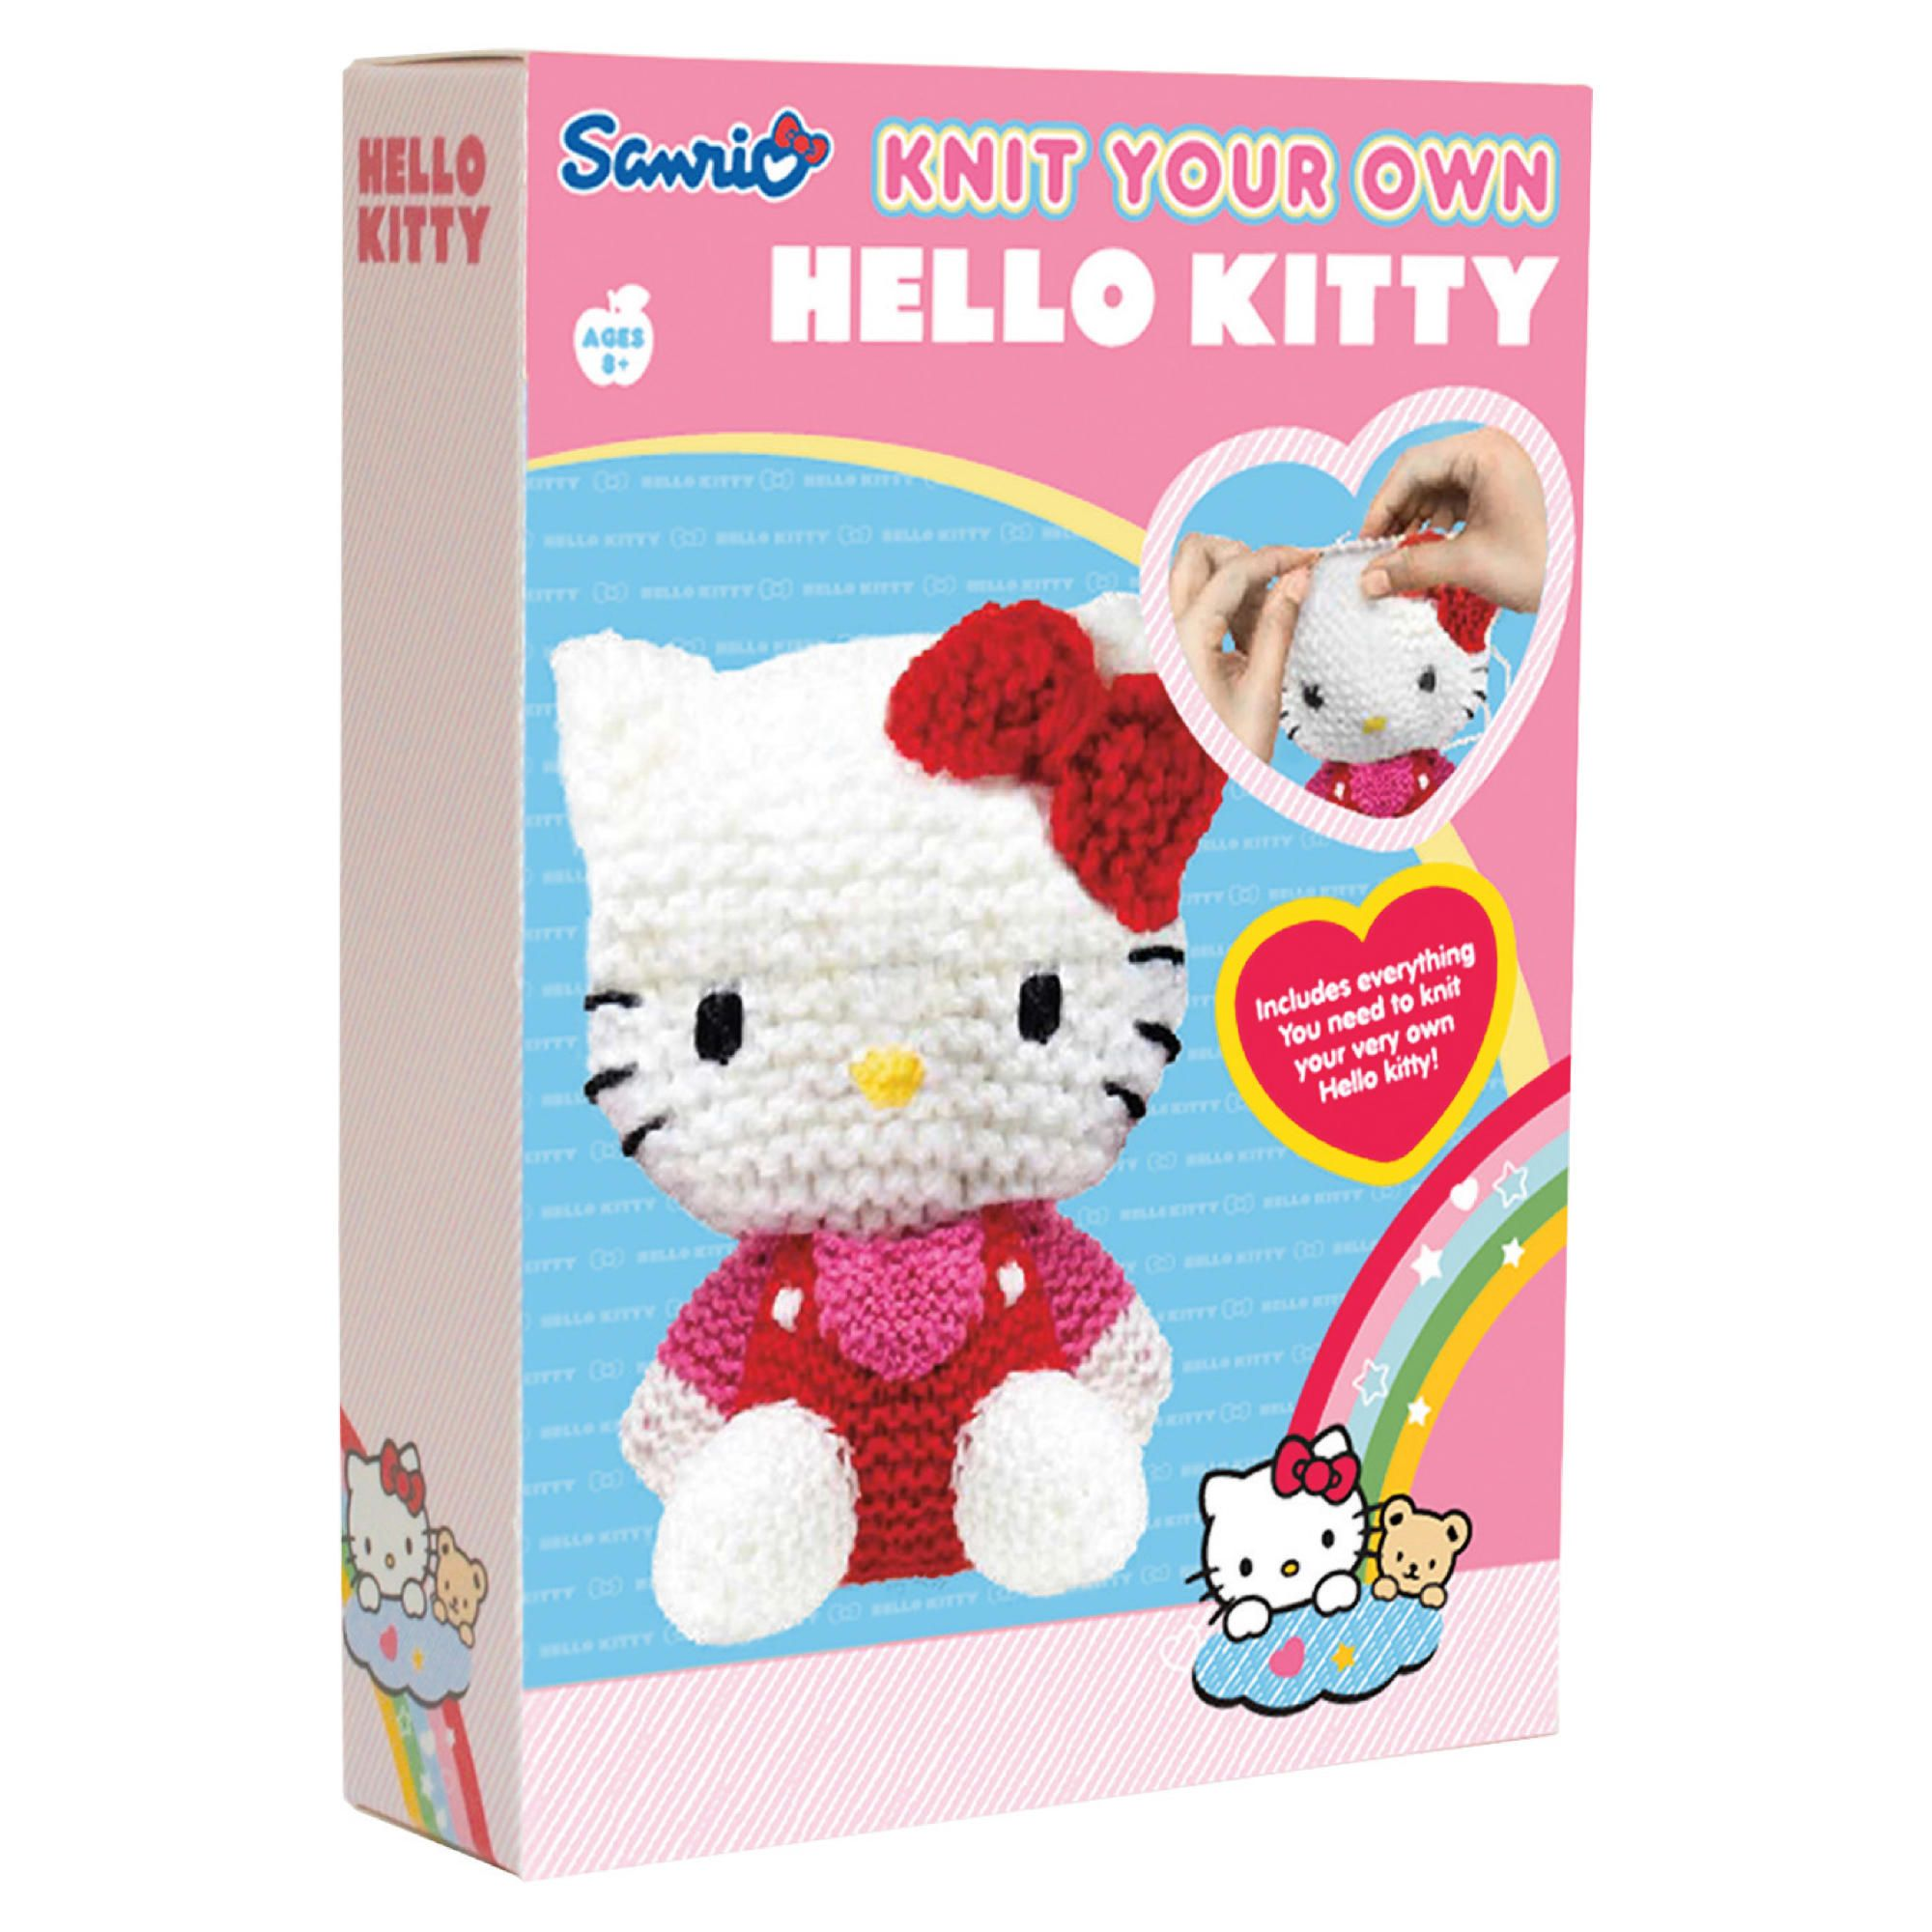 who owns hello kitty